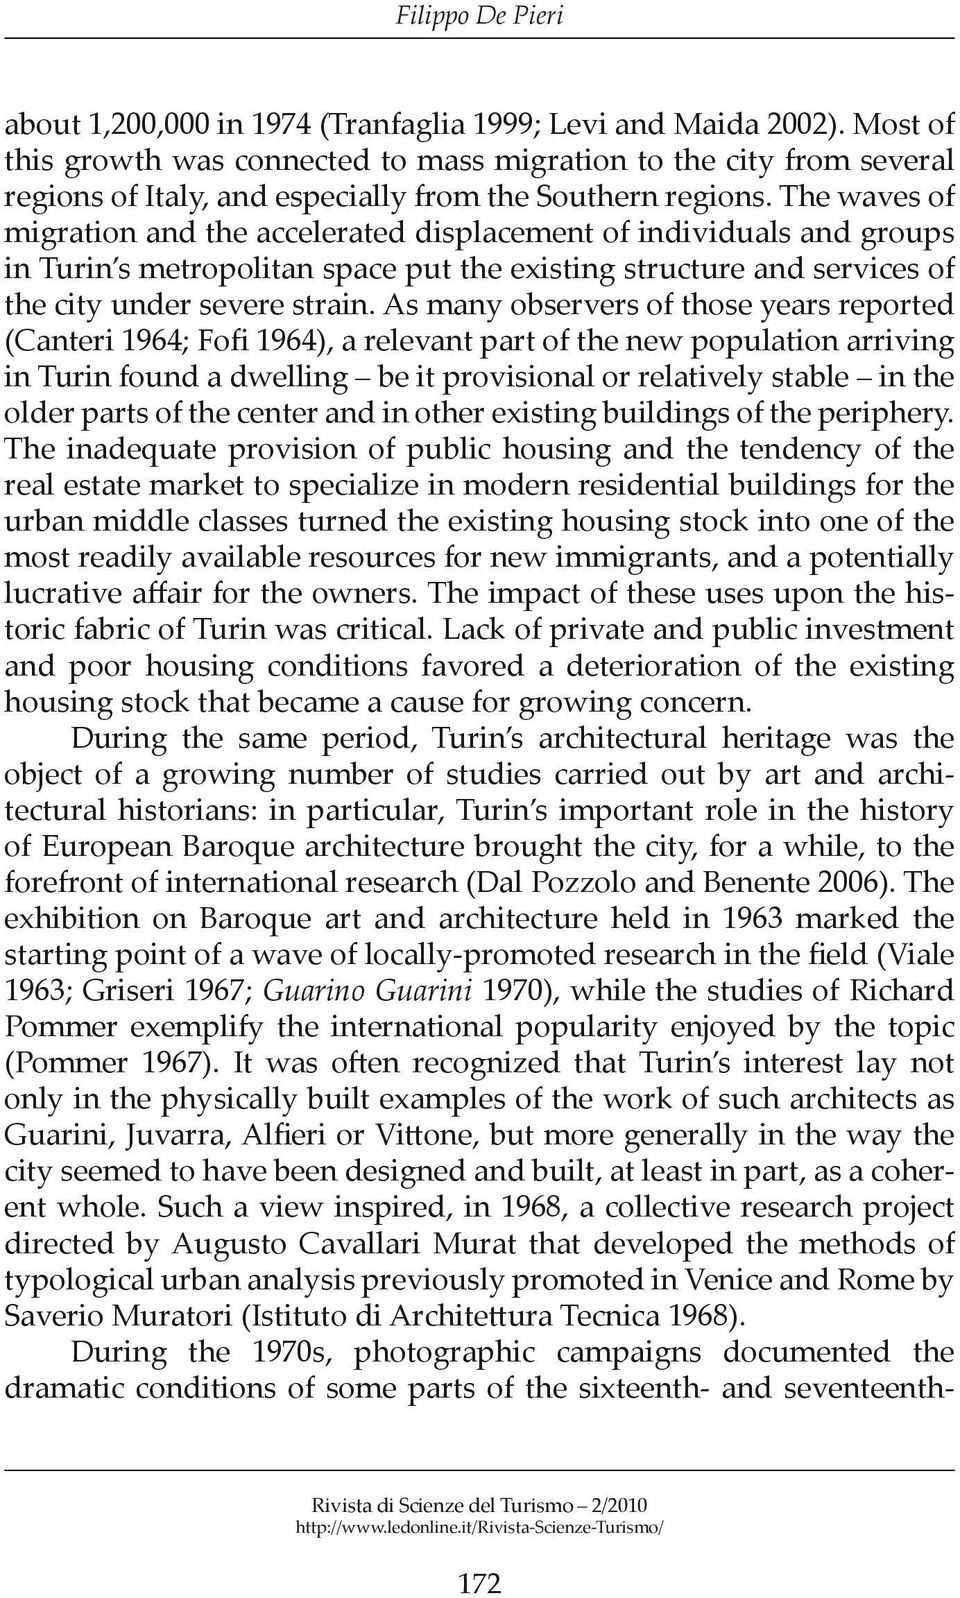 The waves of migration and the accelerated displacement of individuals and groups in Turin s metropolitan space put the existing structure and services of the city under severe strain.